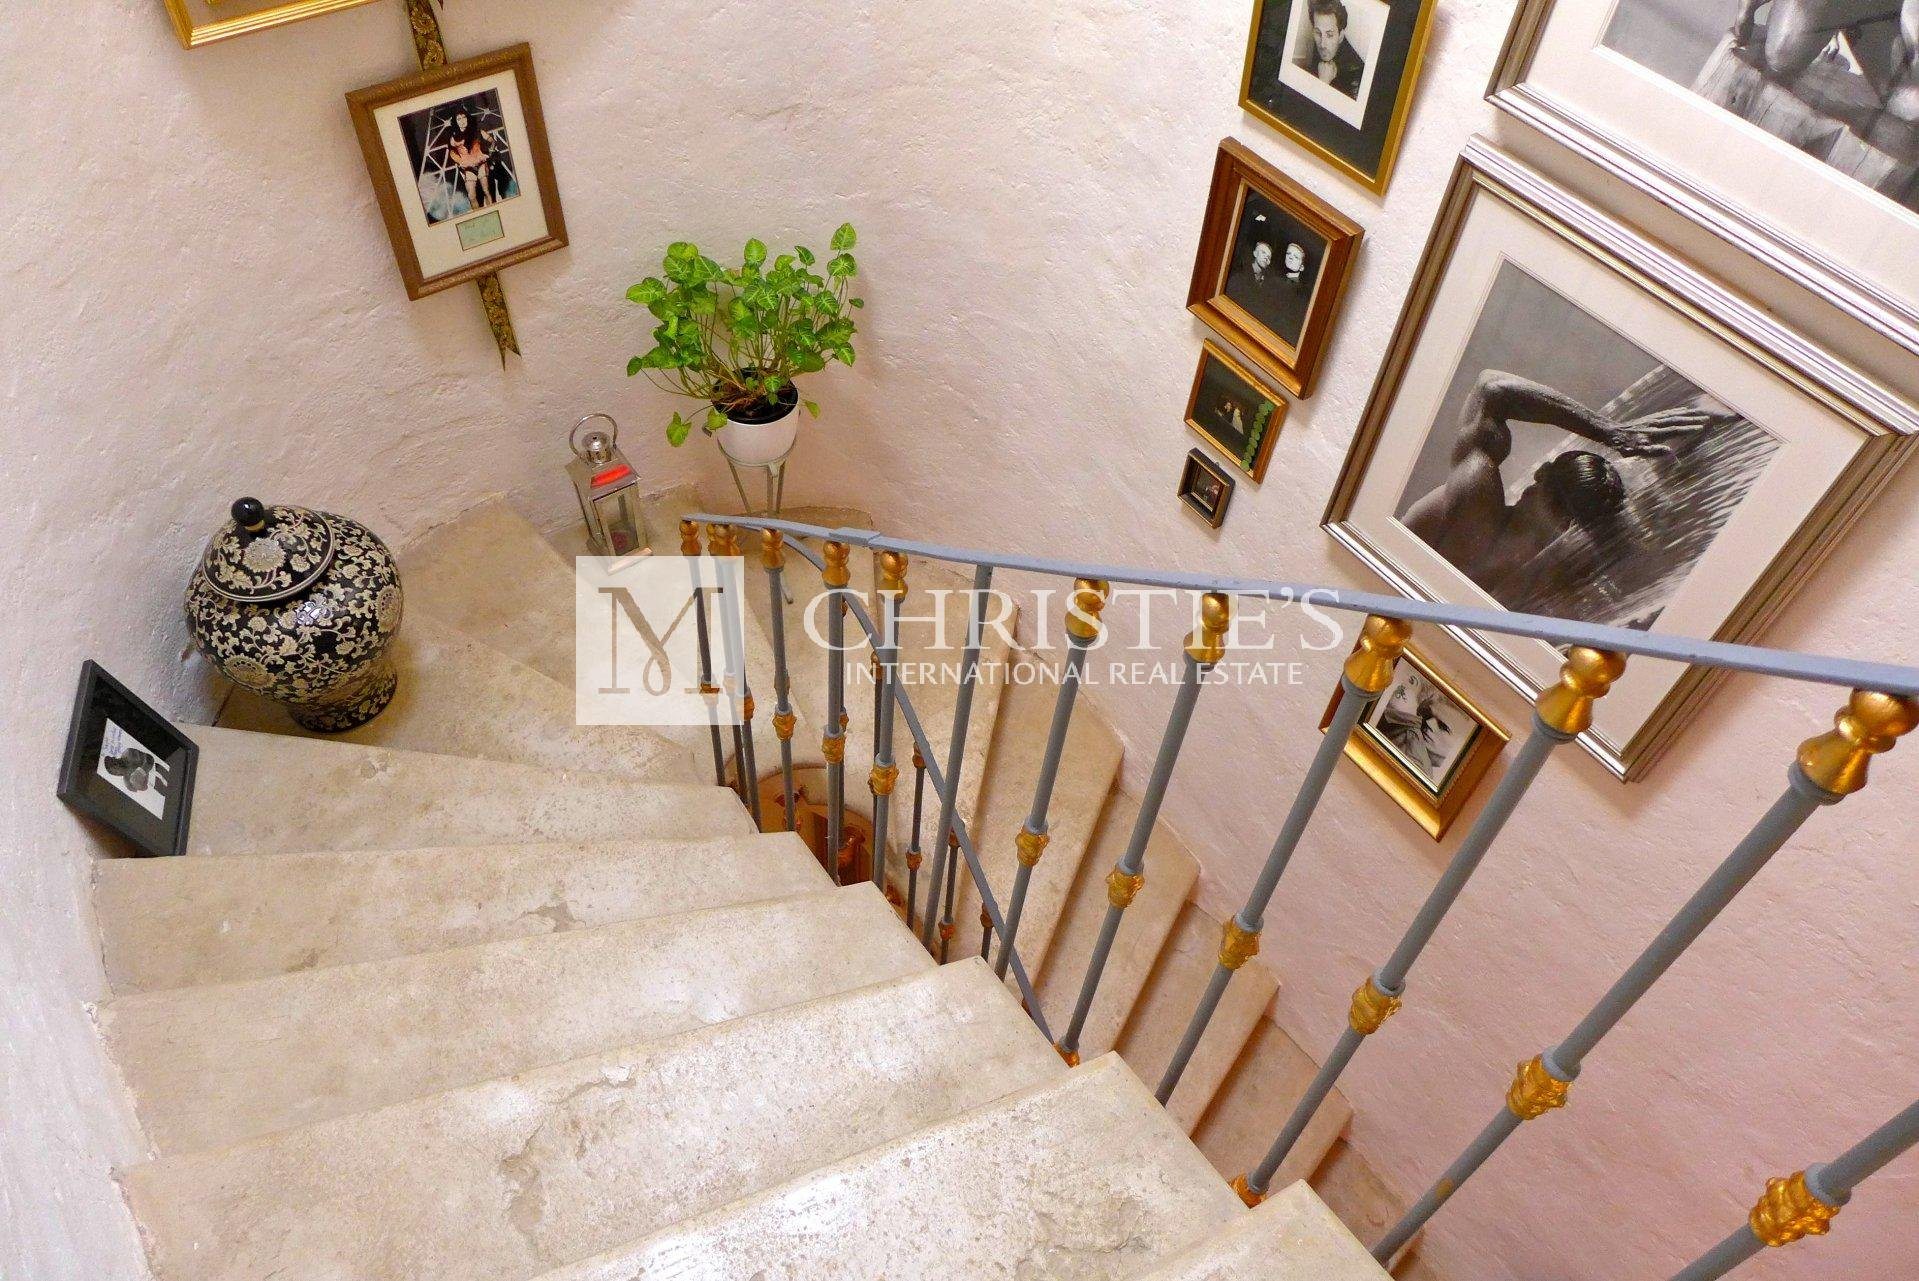 Fully renovated 6 bedroom Stone Maison de Maitre near Monpazier and Dordogne border